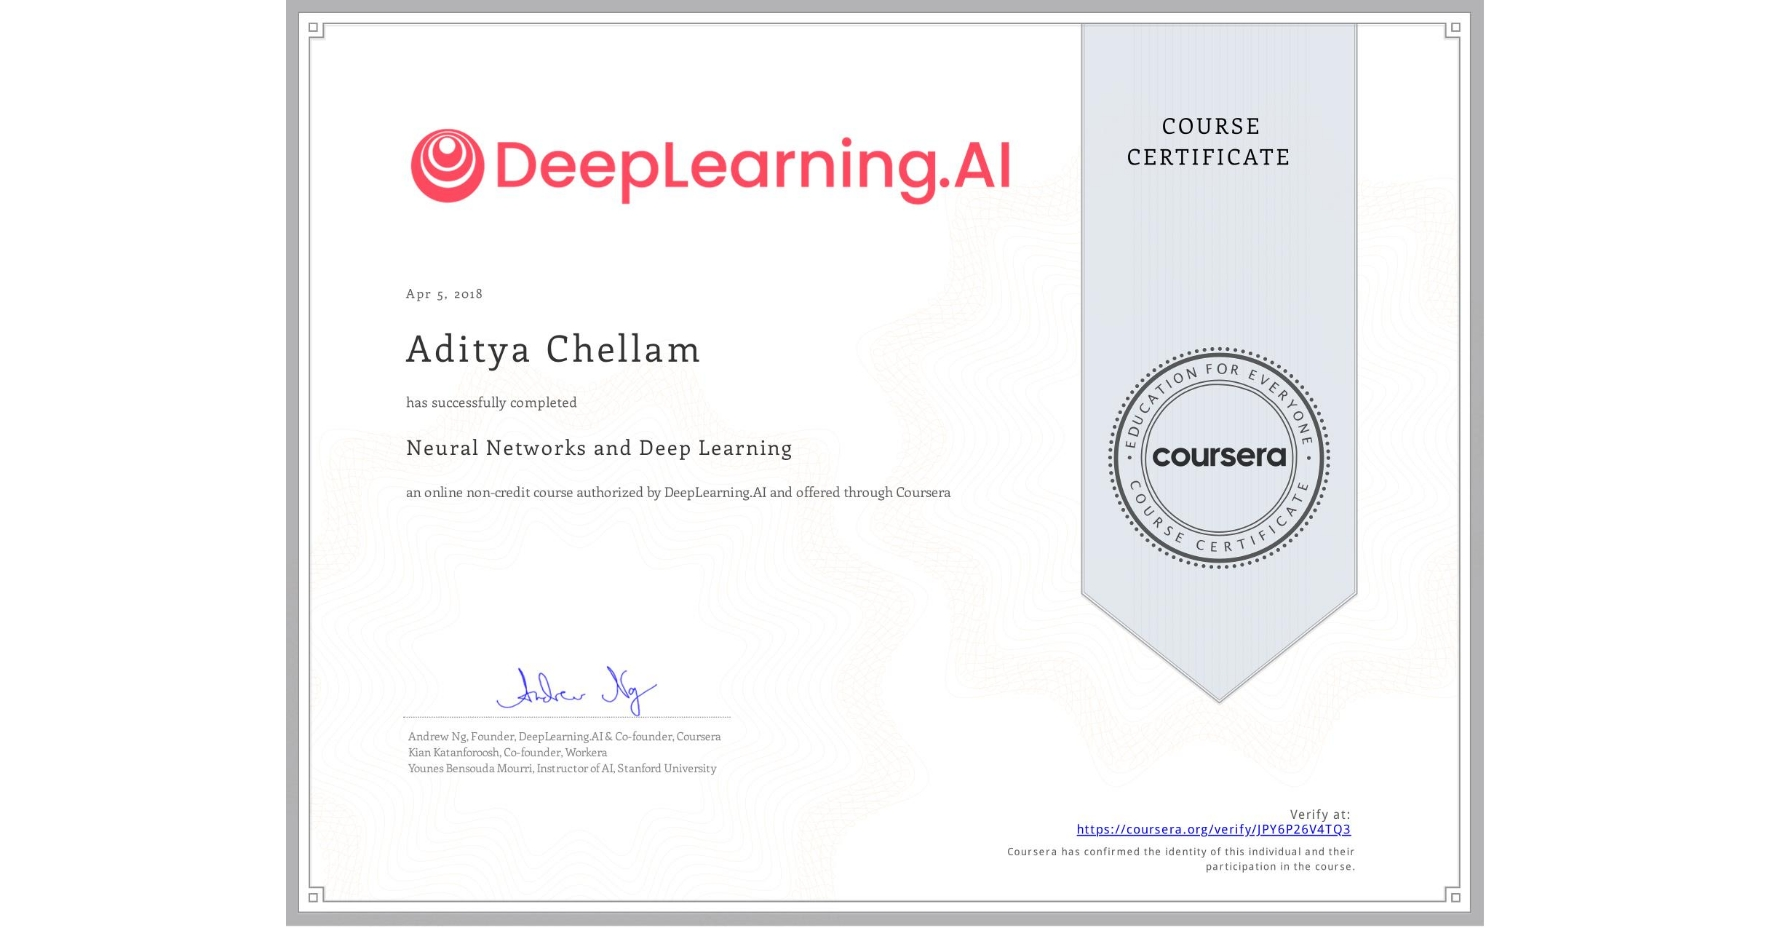 View certificate for Aditya Chellam, Neural Networks and Deep Learning, an online non-credit course authorized by DeepLearning.AI and offered through Coursera